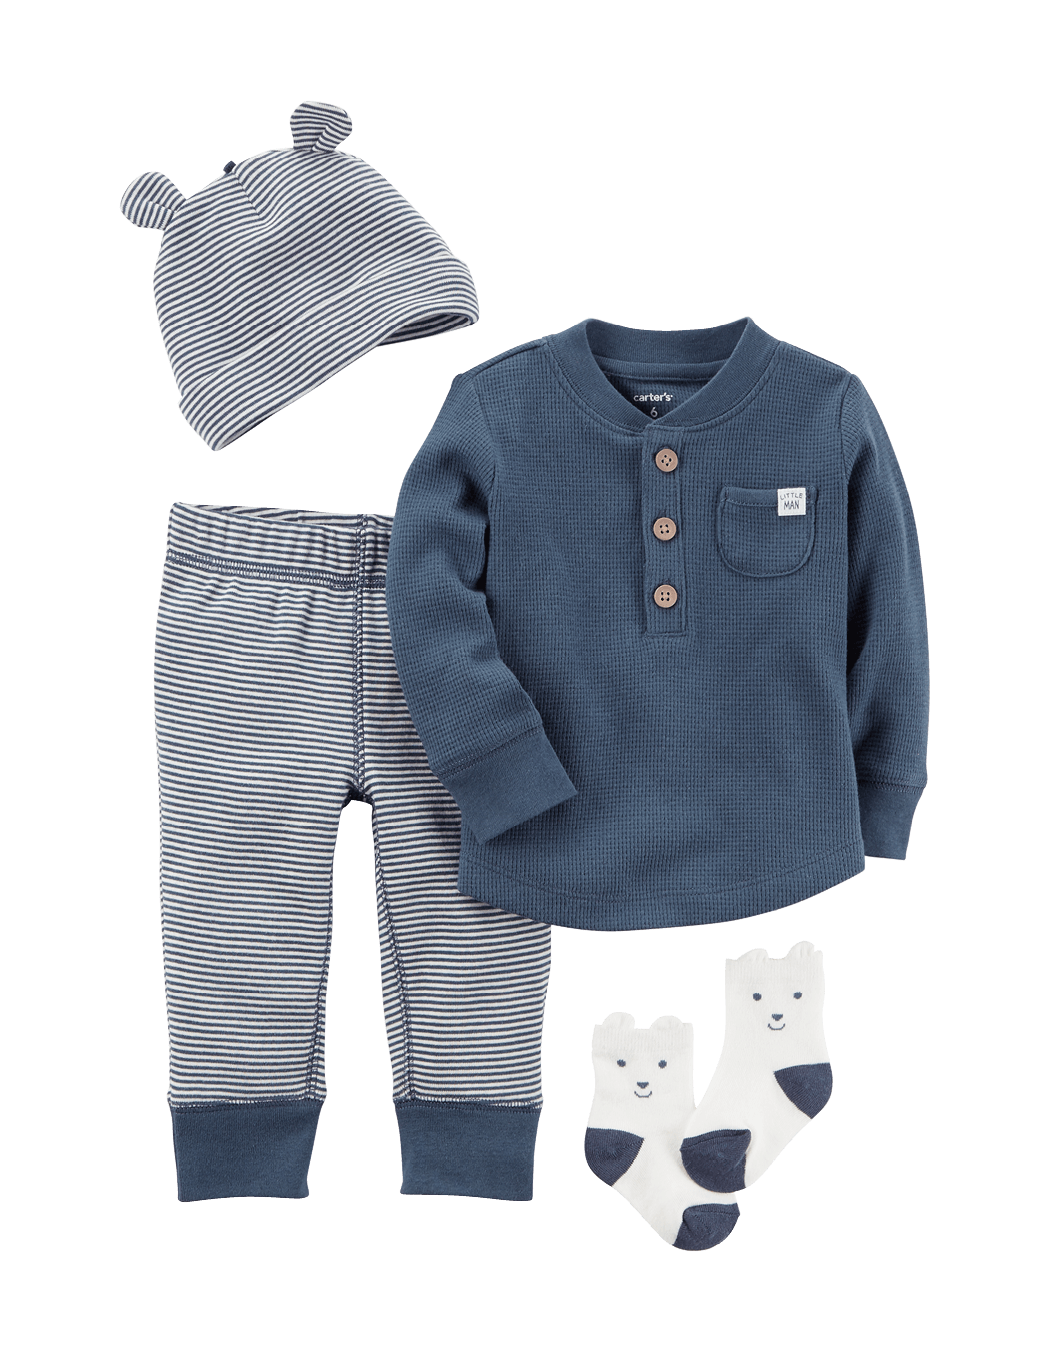 6151f24866b2 Baby Clothing Necessity - Win With Carter s